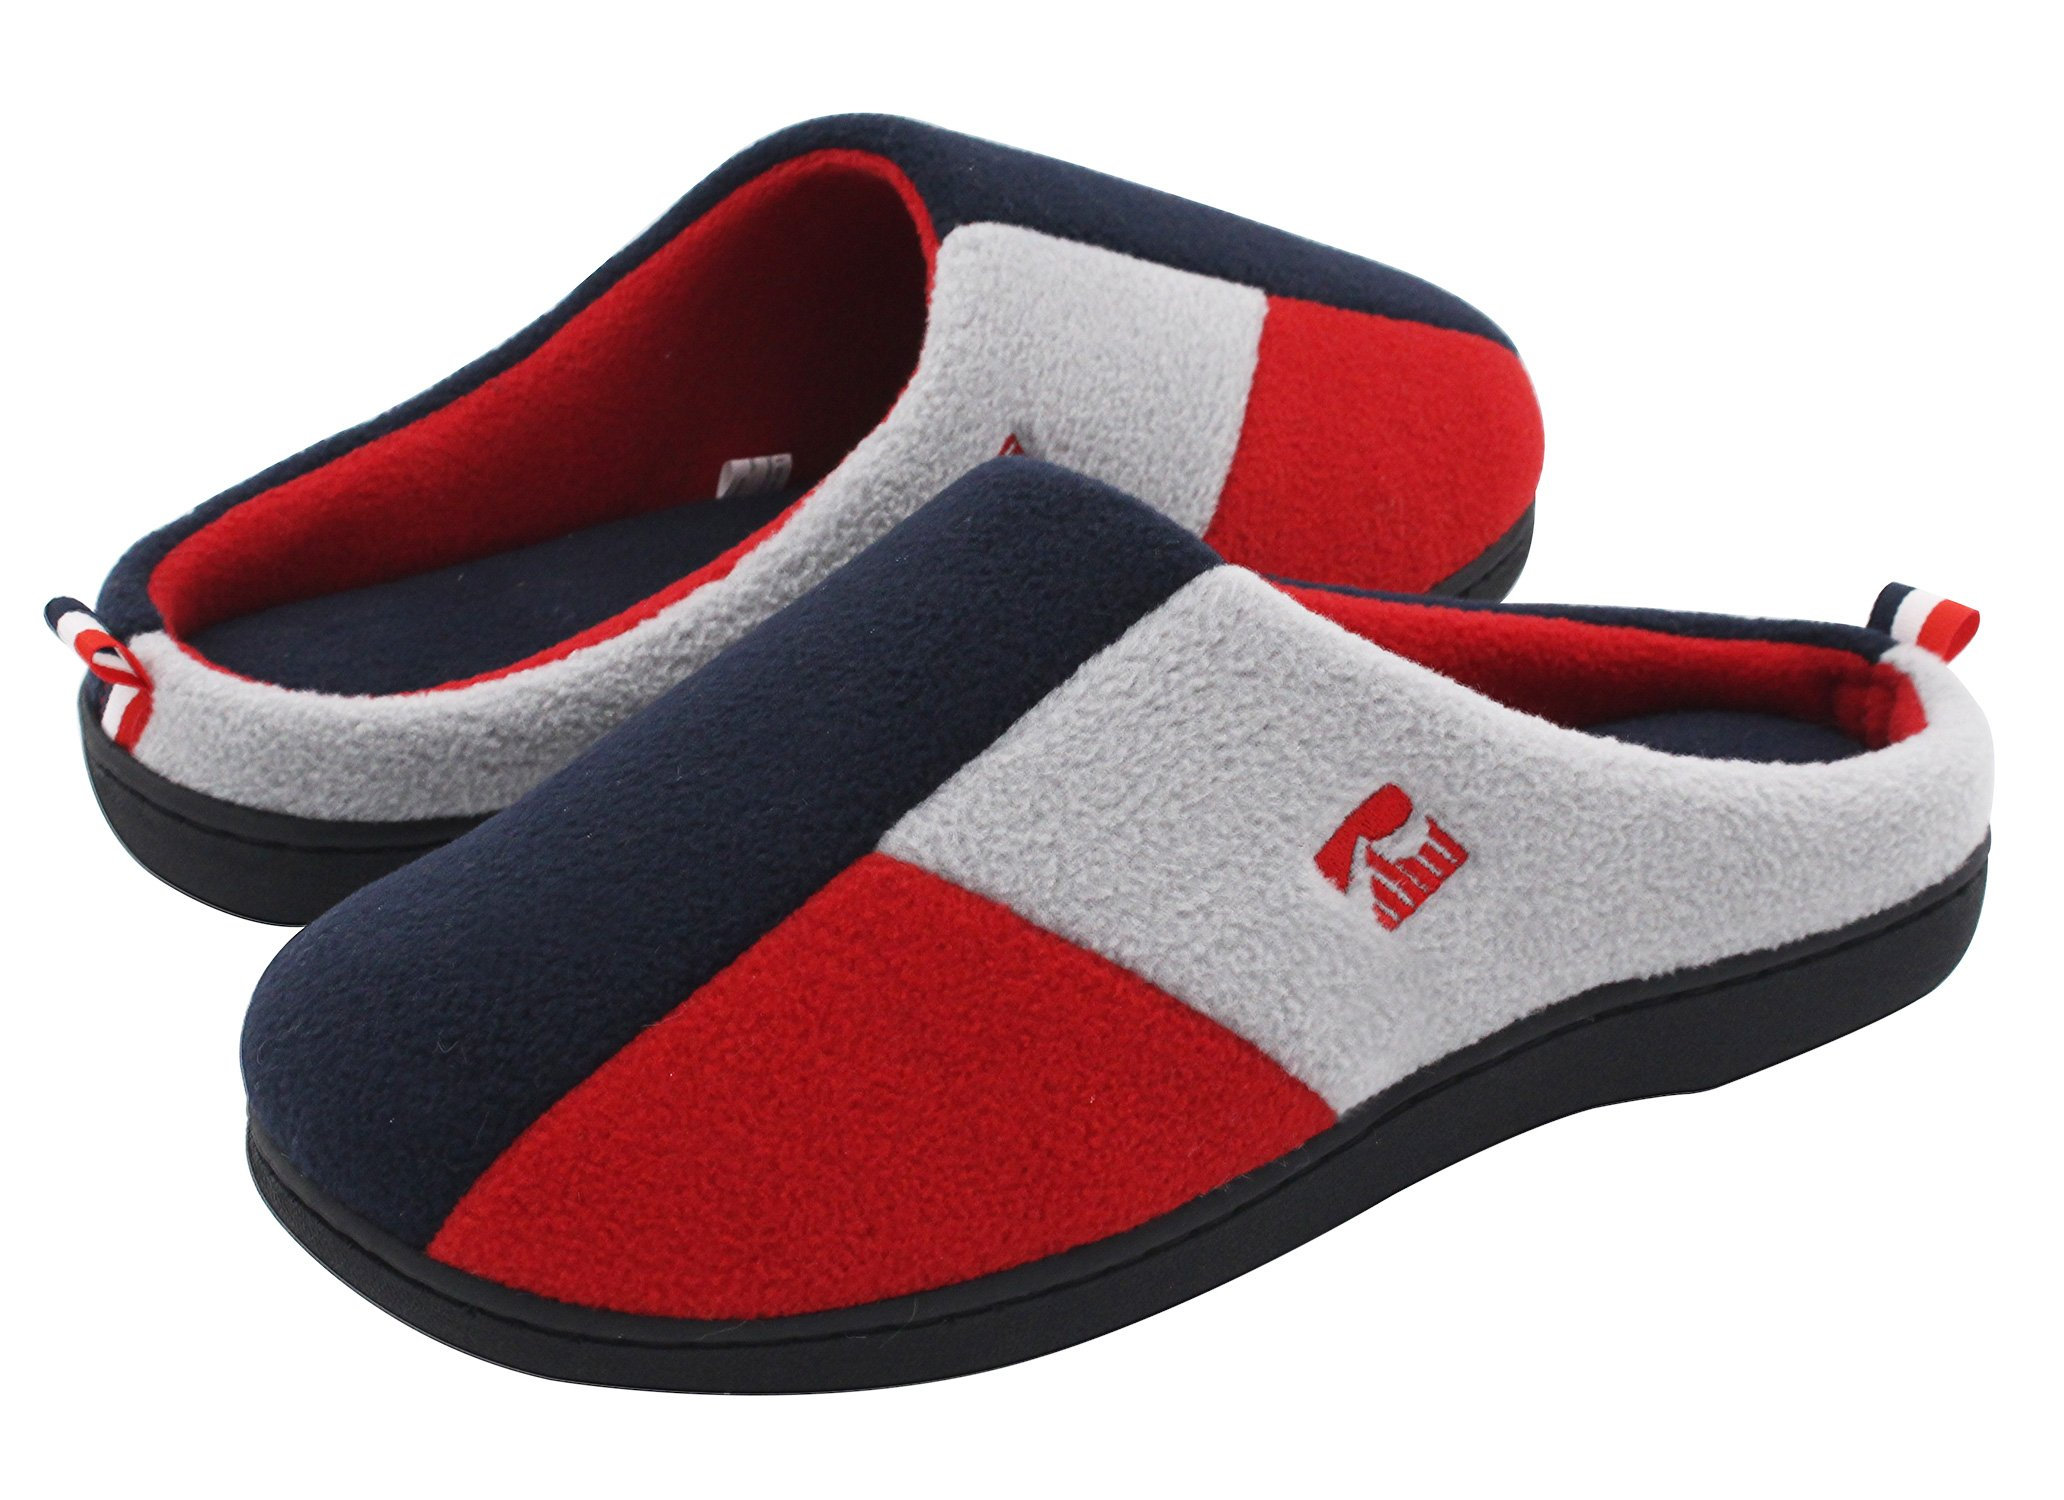 RockDove Men's Tri-Color Memory Foam Slippers Winter Warm Blue/Red/Grey Color Blocking Slip On Indoor Clogs for Home & Lounging (9-10 D(M) US)